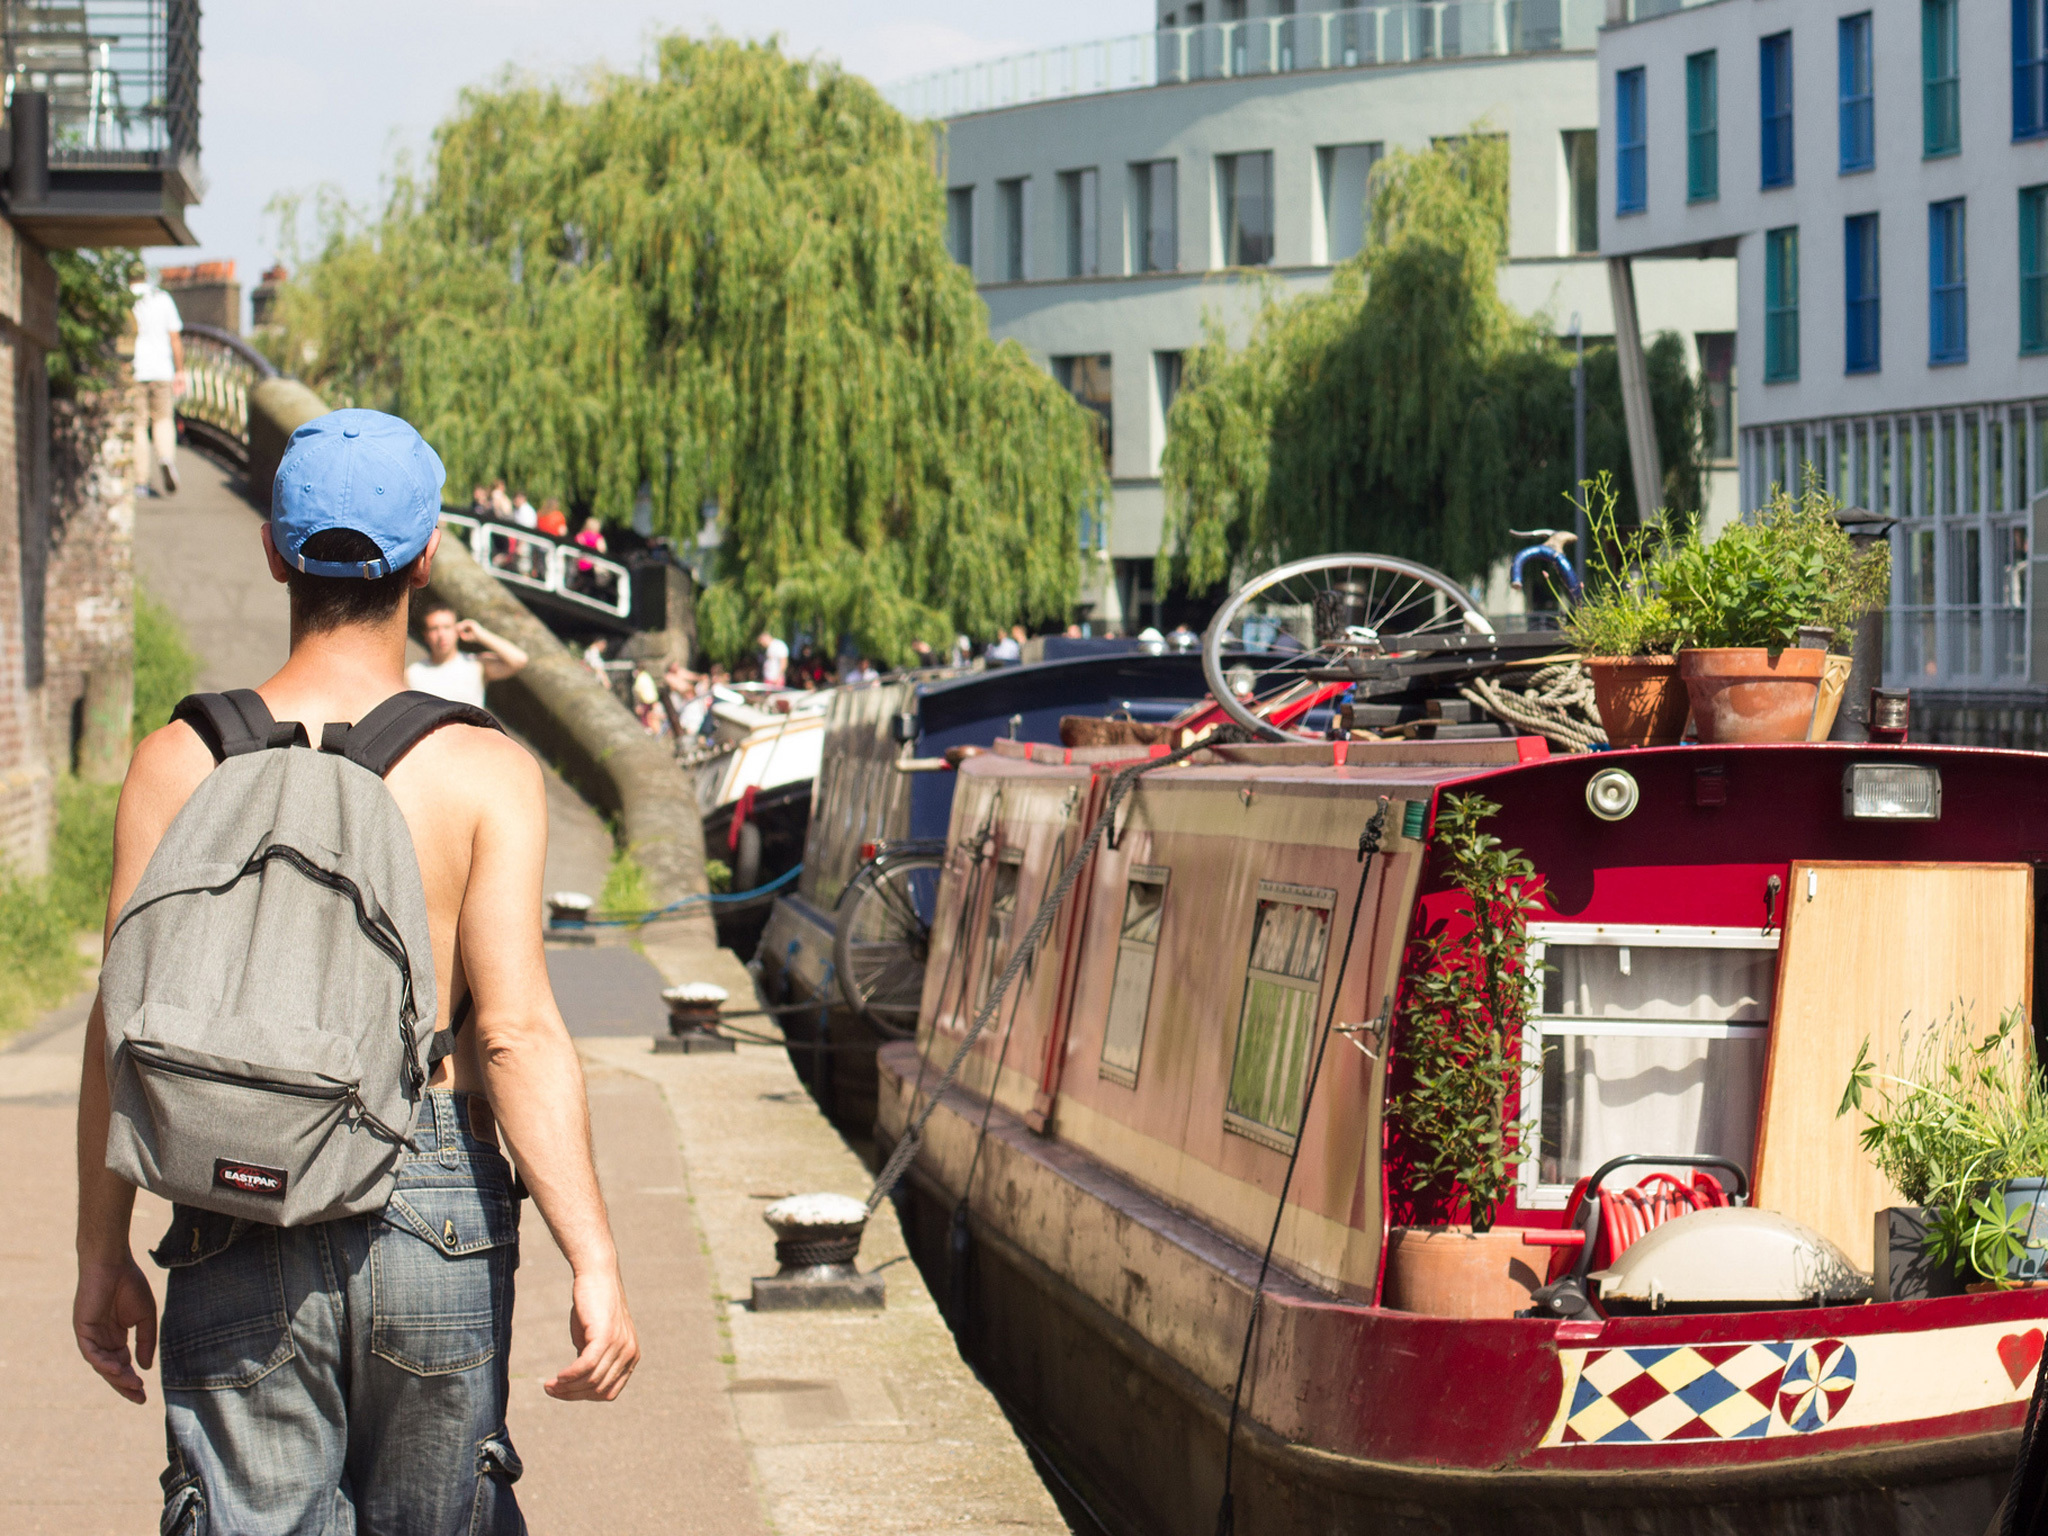 Sunny day on the canal